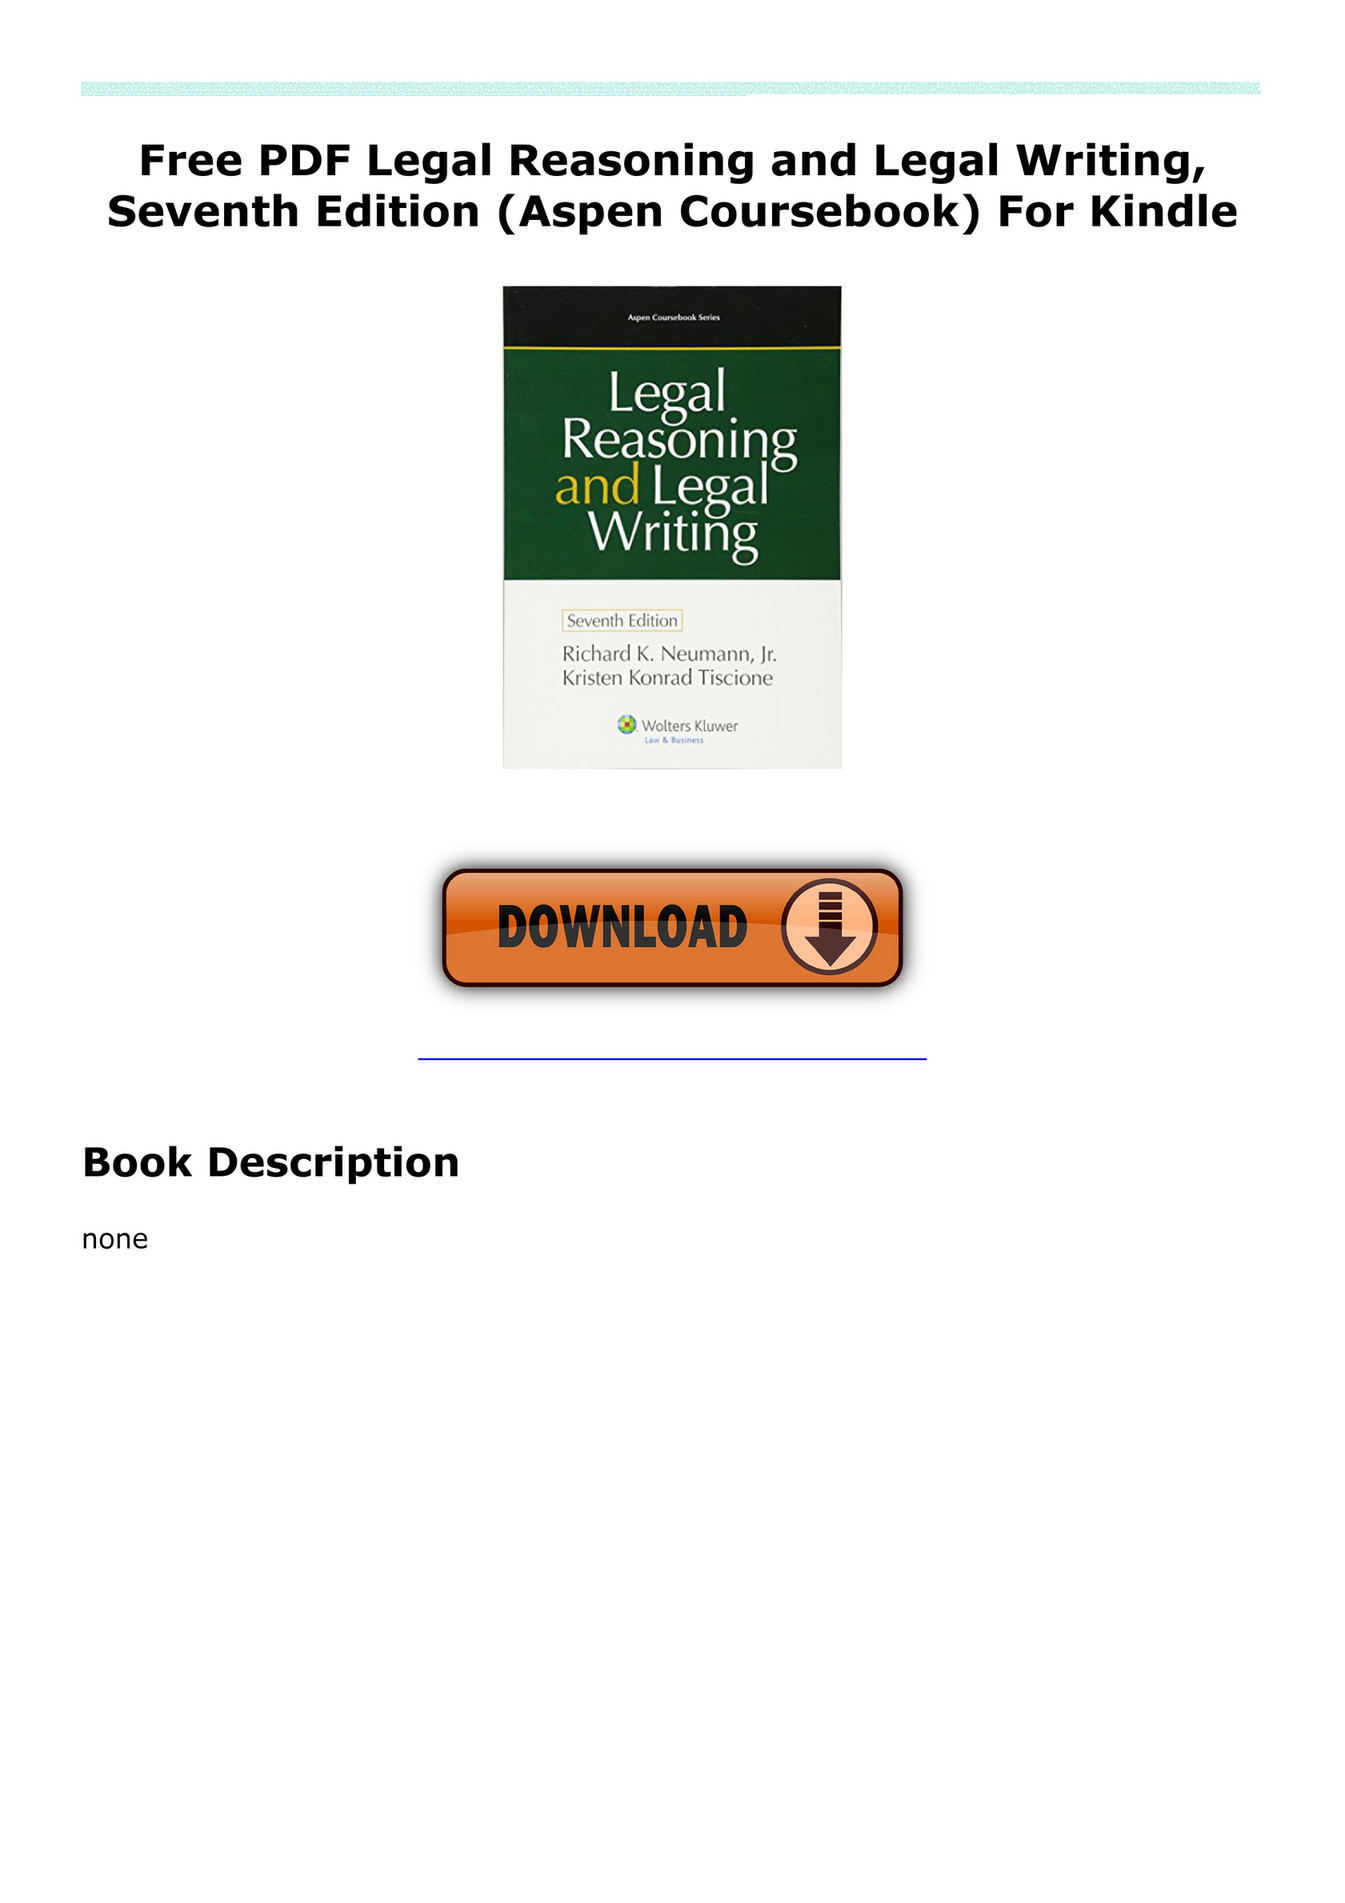 legal reasoning and legal writing seventh edition